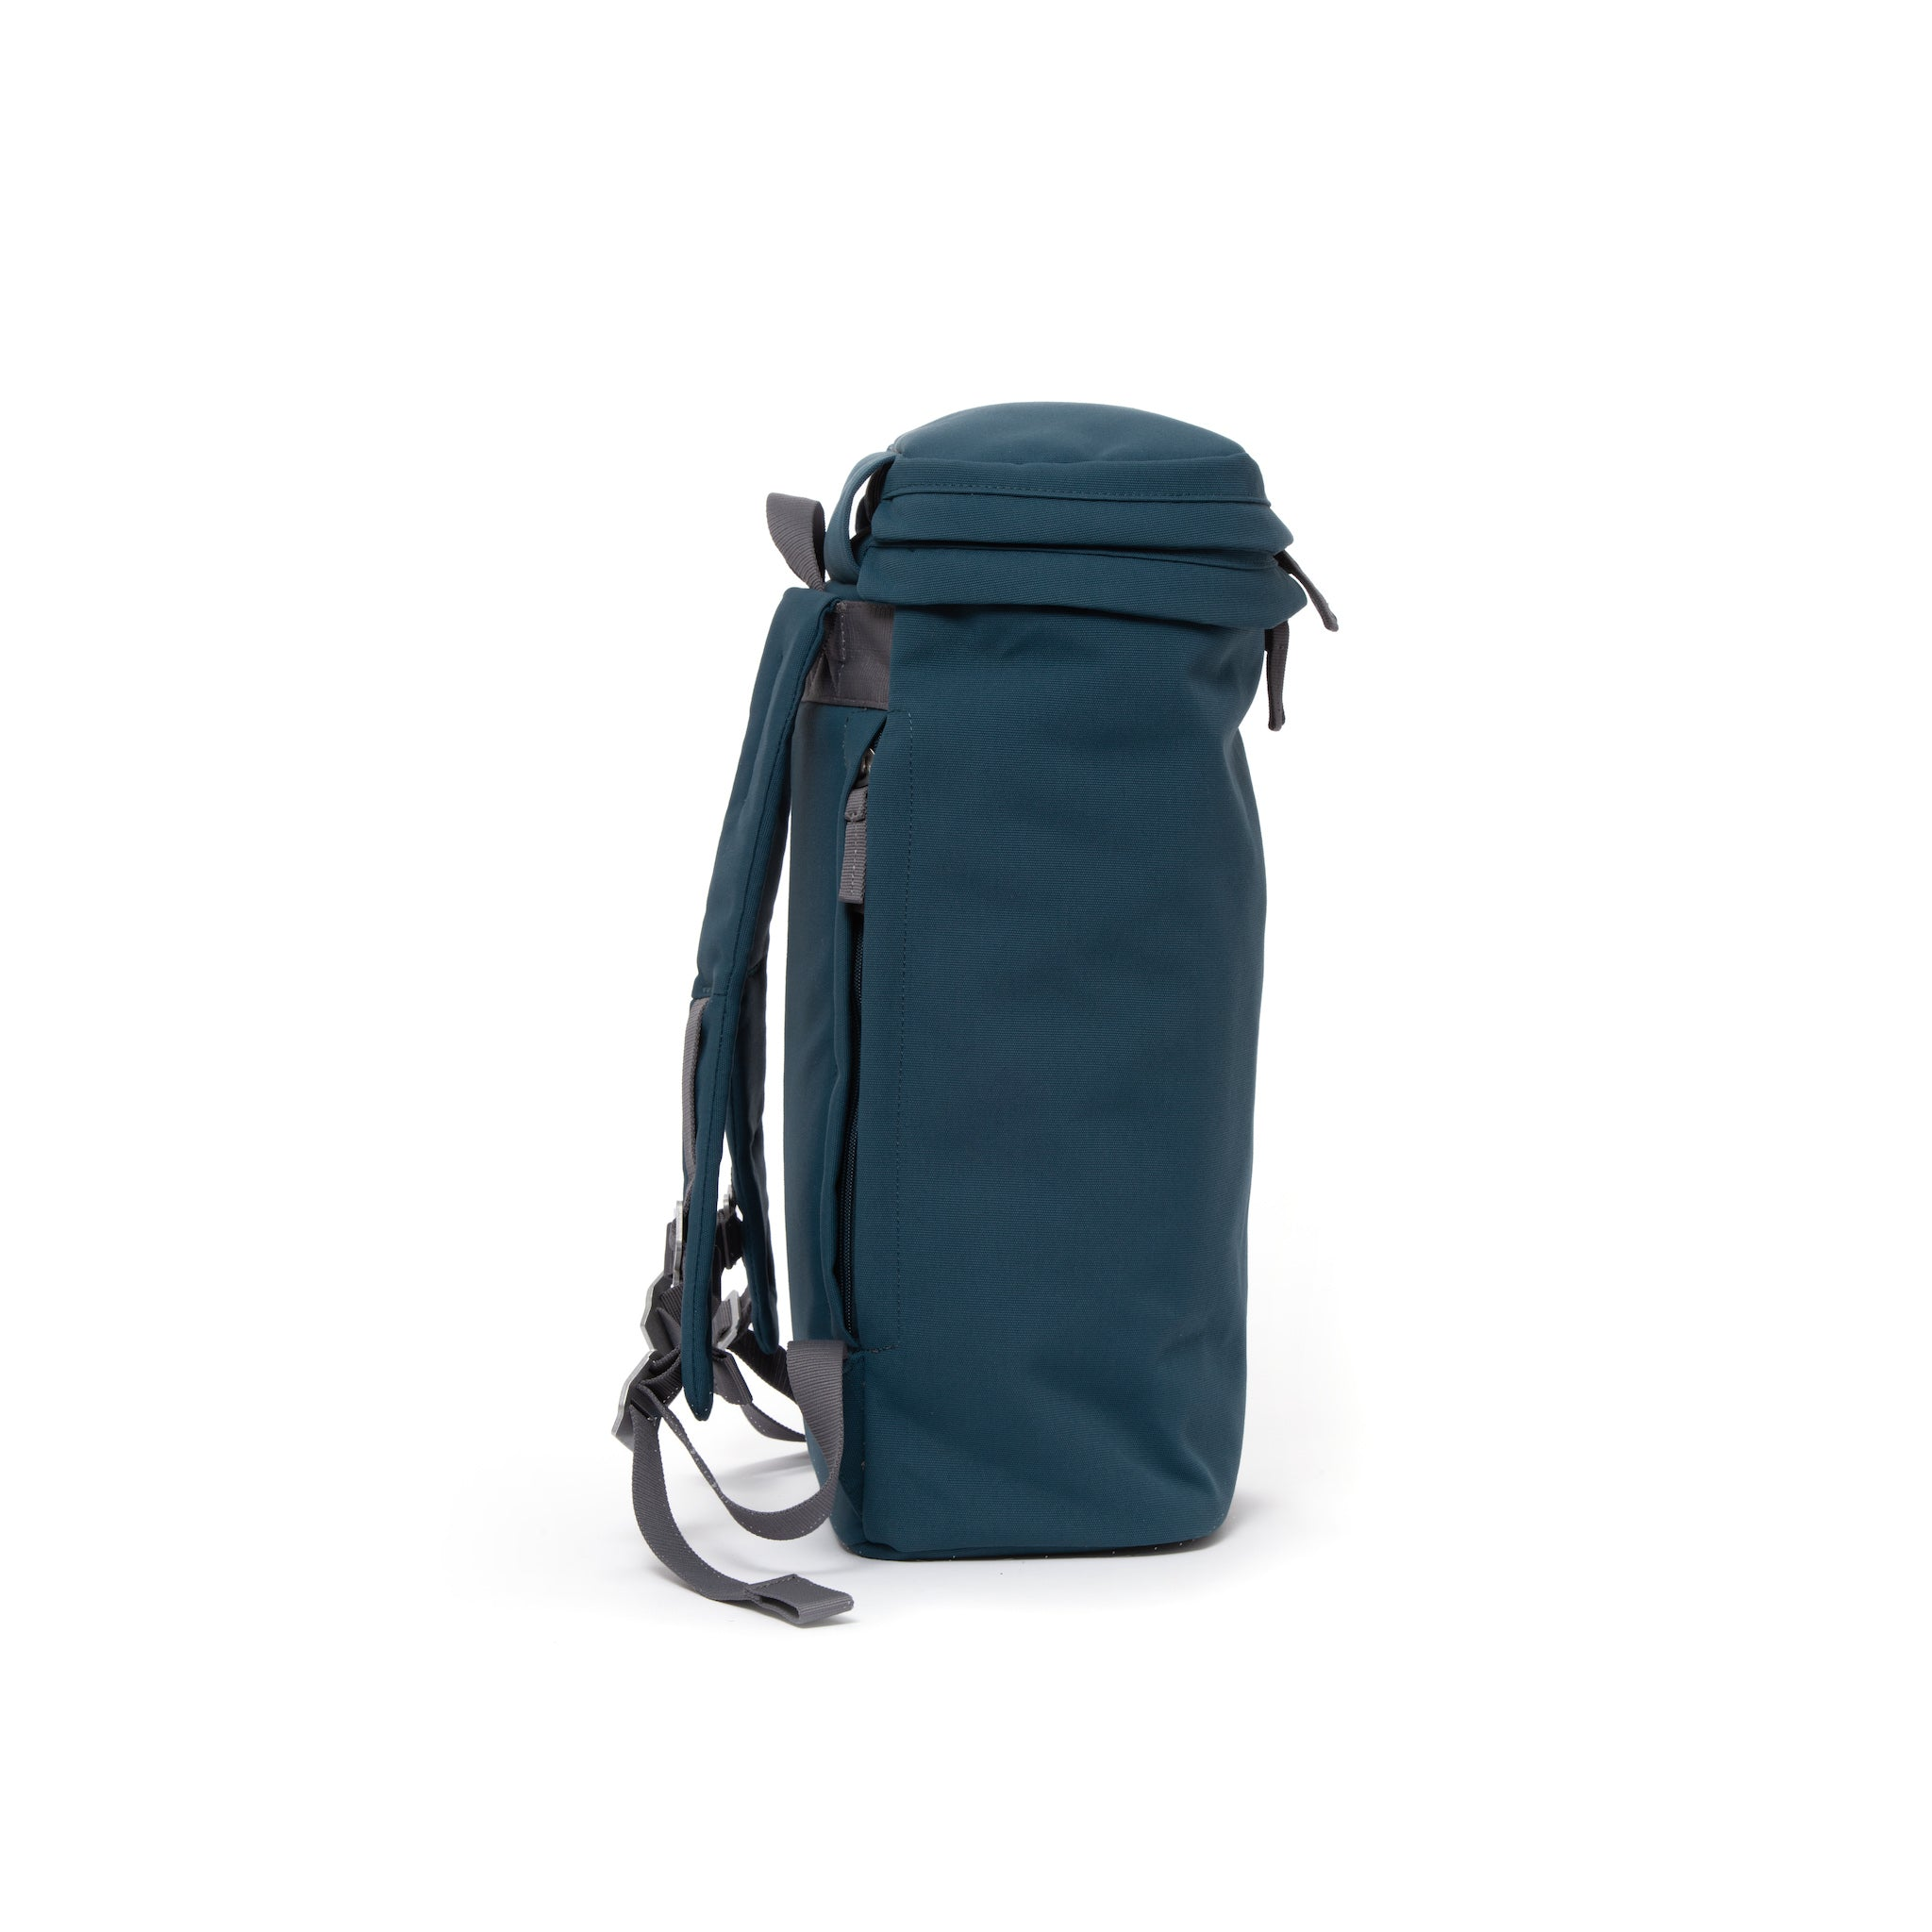 Blue canvas backpack with top zip pocket.